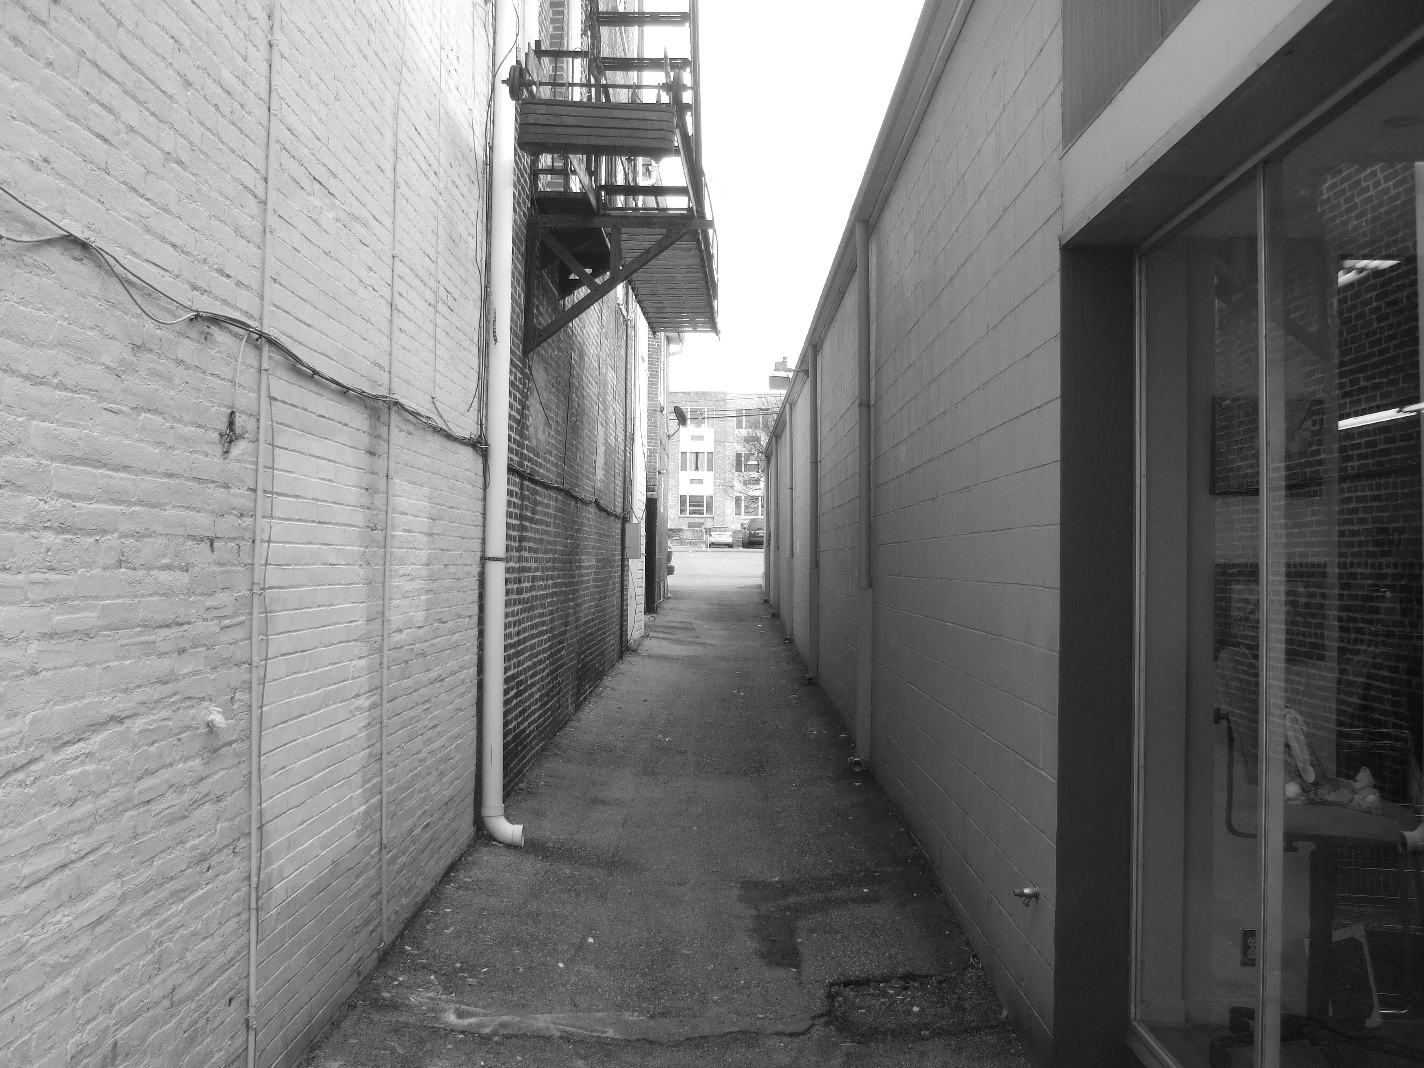 Alleyway Before